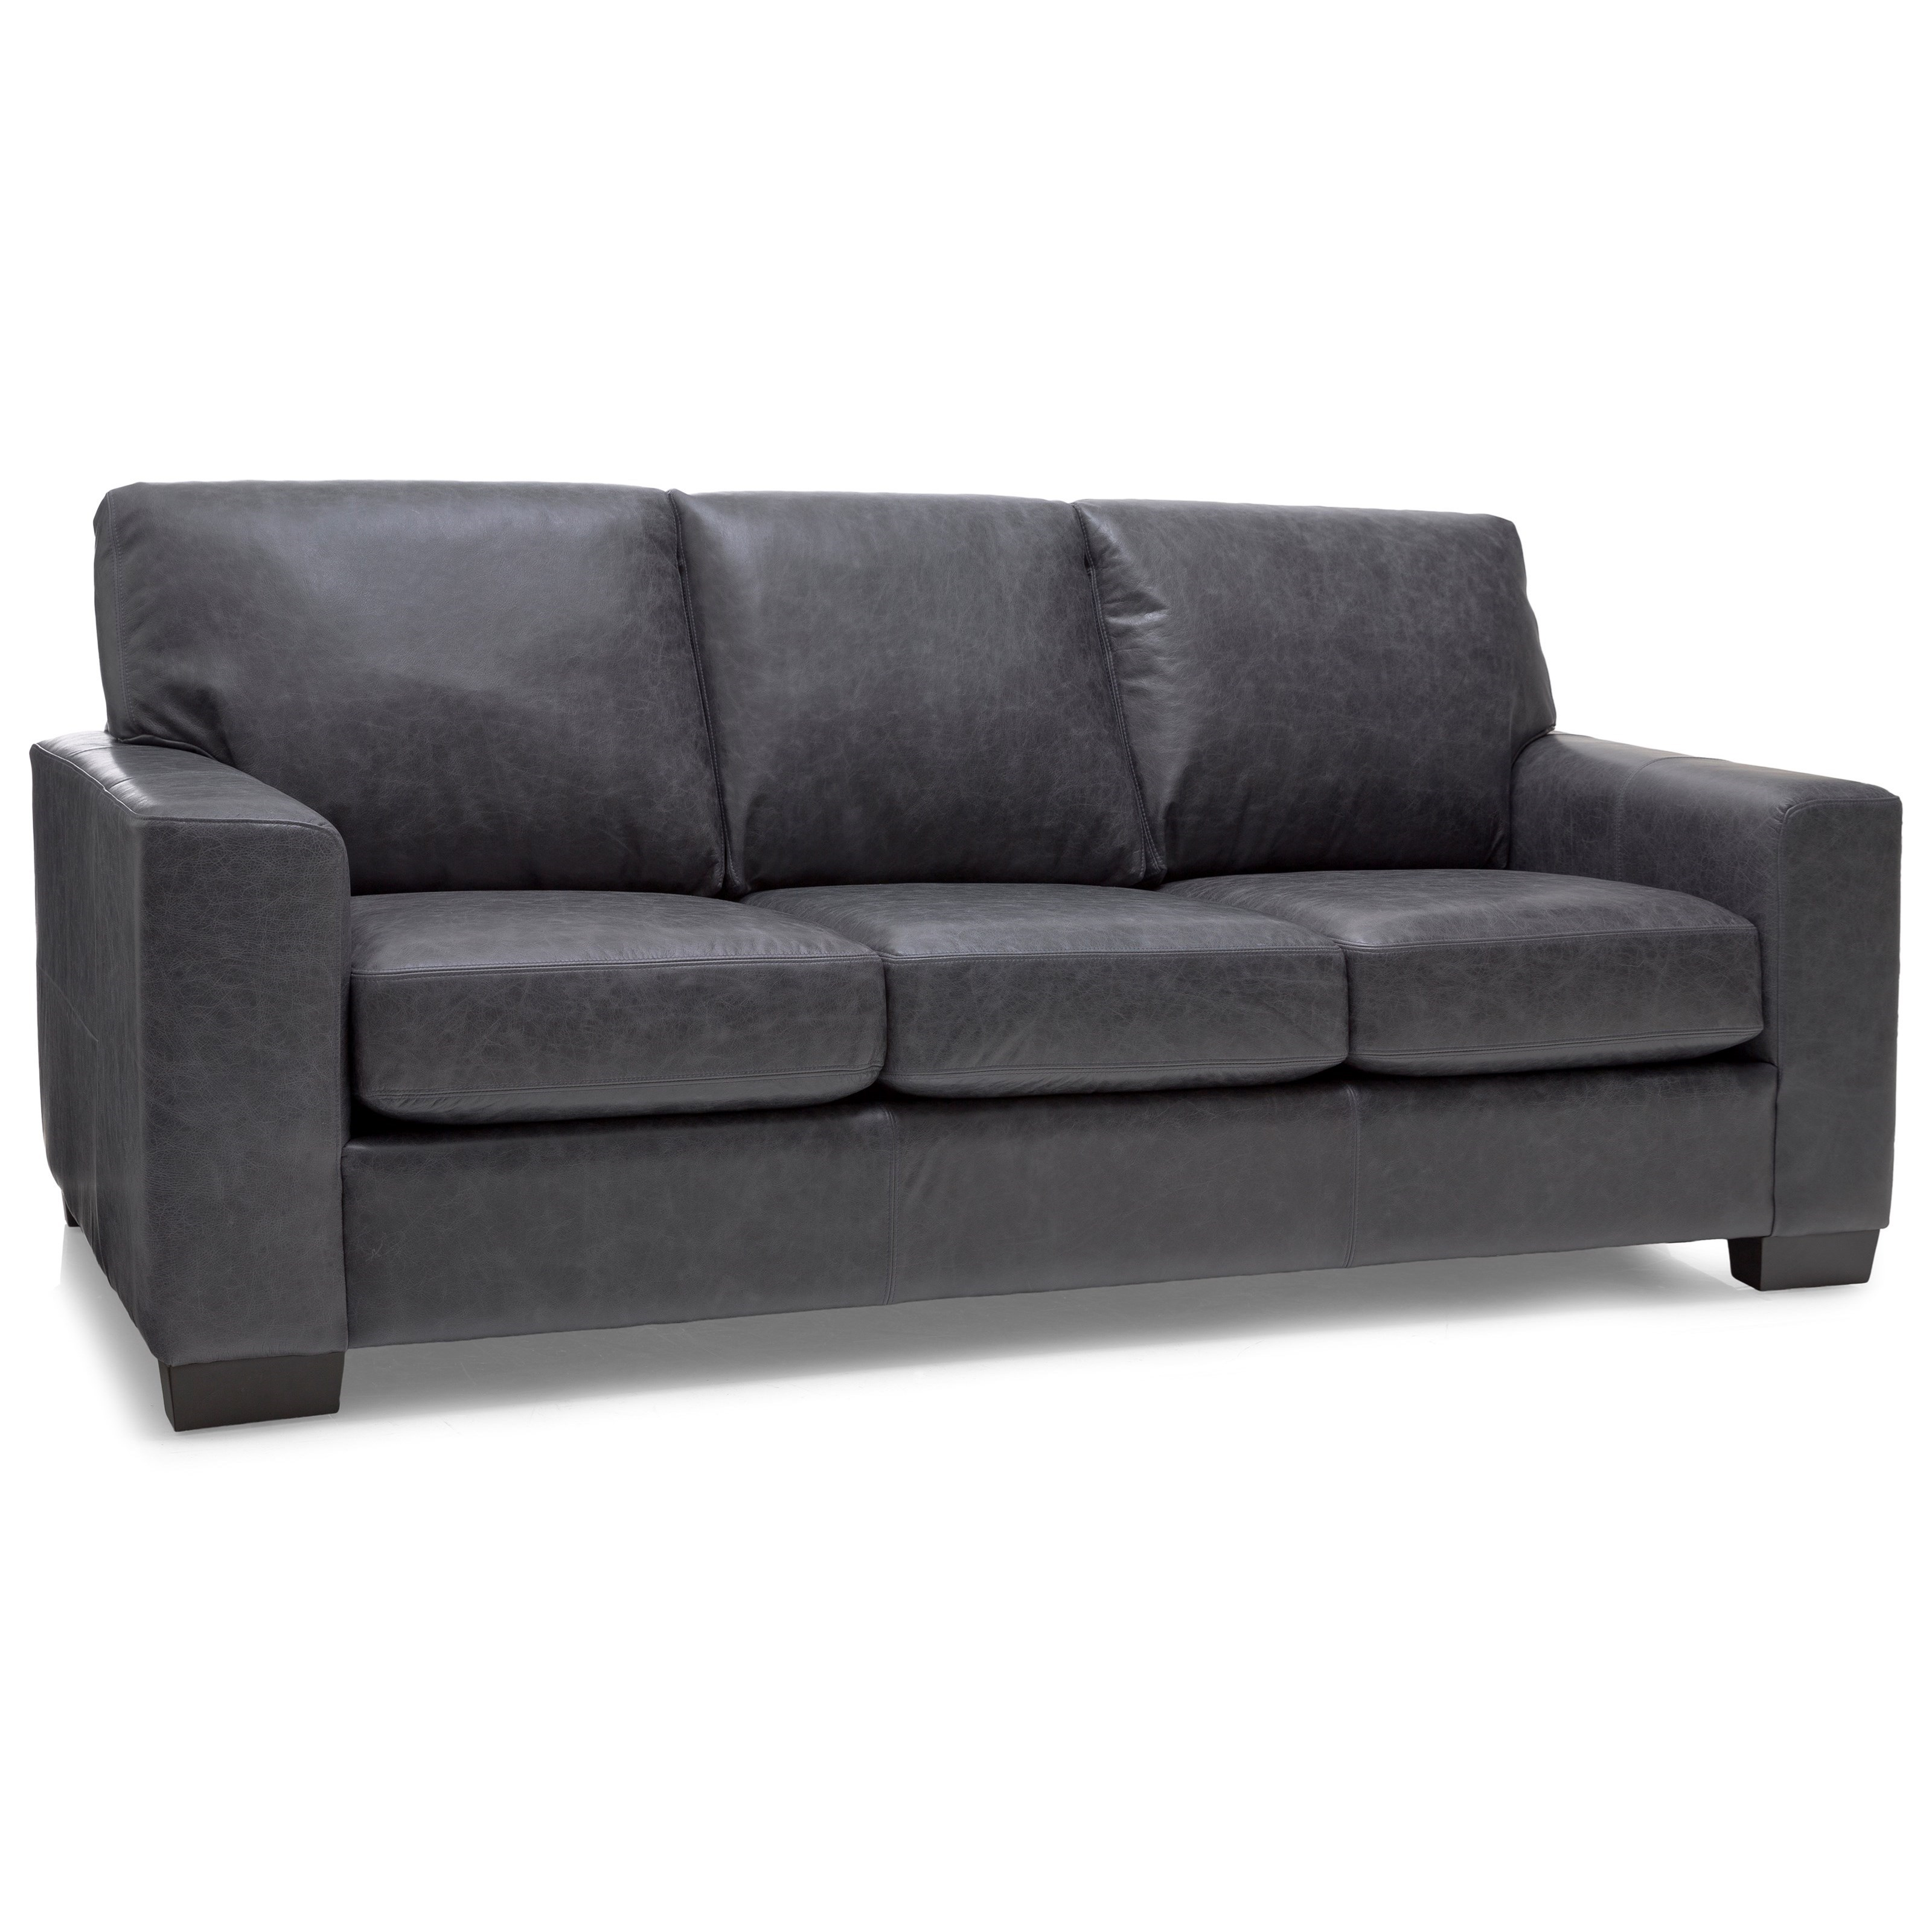 3483 Sofa by Decor-Rest at Upper Room Home Furnishings